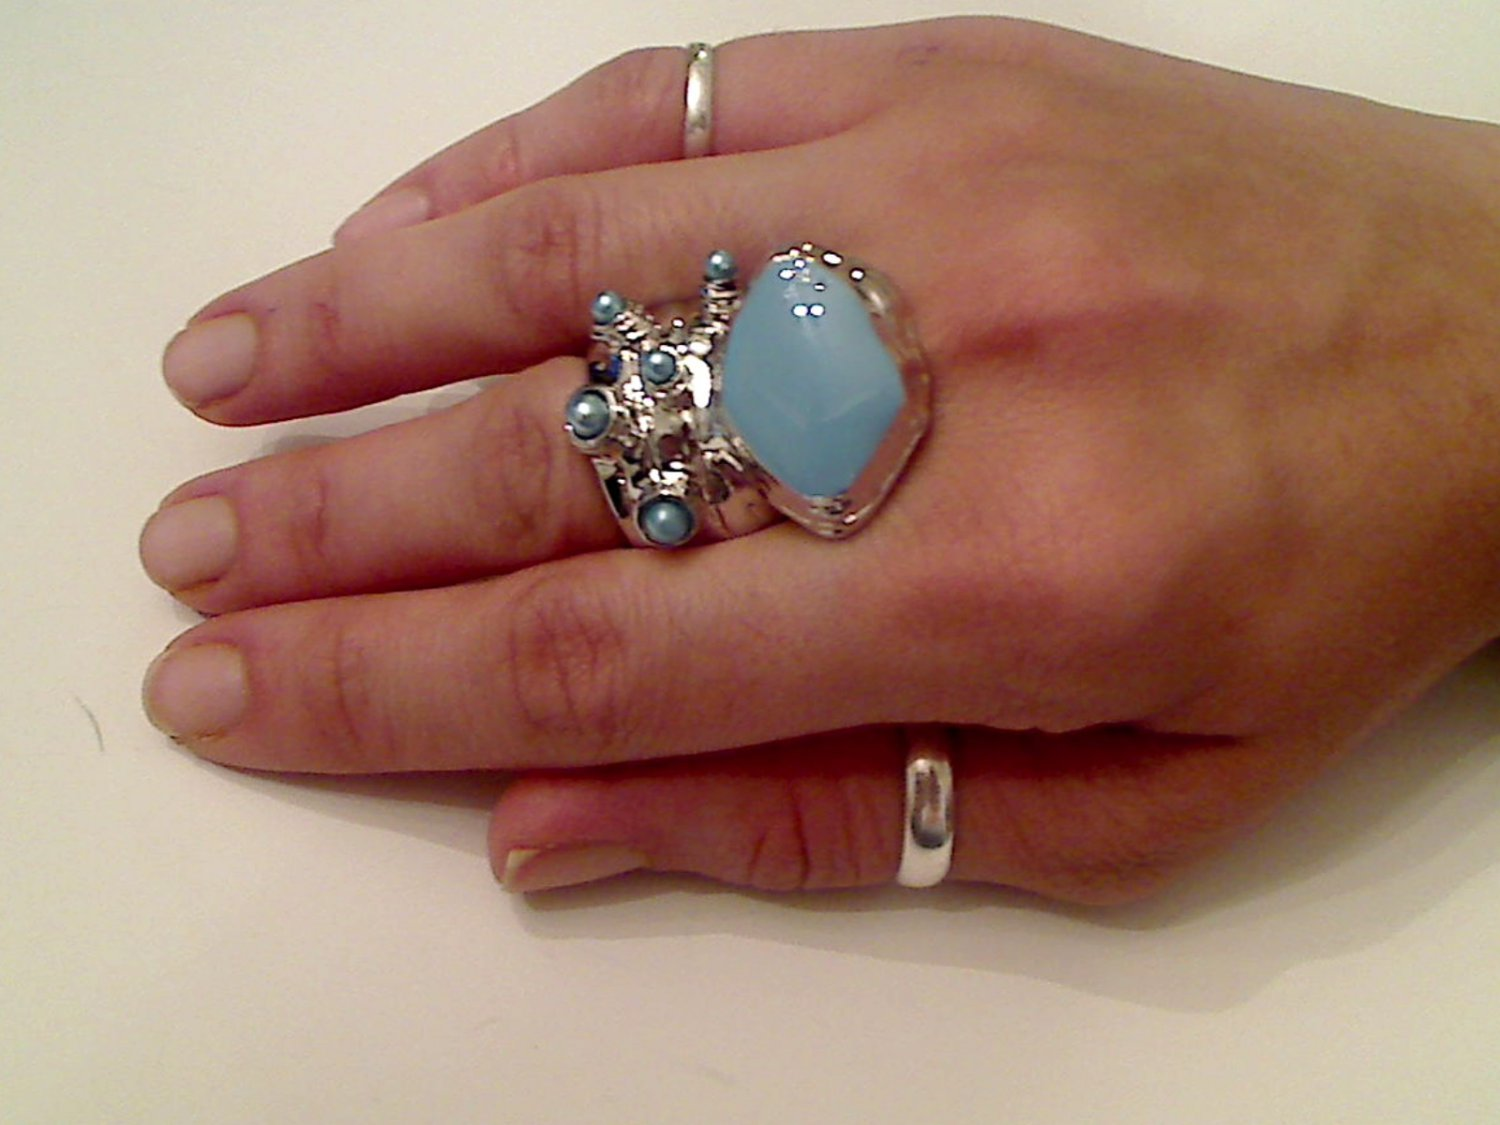 BABY BLUE ARTY CHUNKY SPIKEY MOON KNUCKLE RING IN SILVER SIZES 7*8*9*10